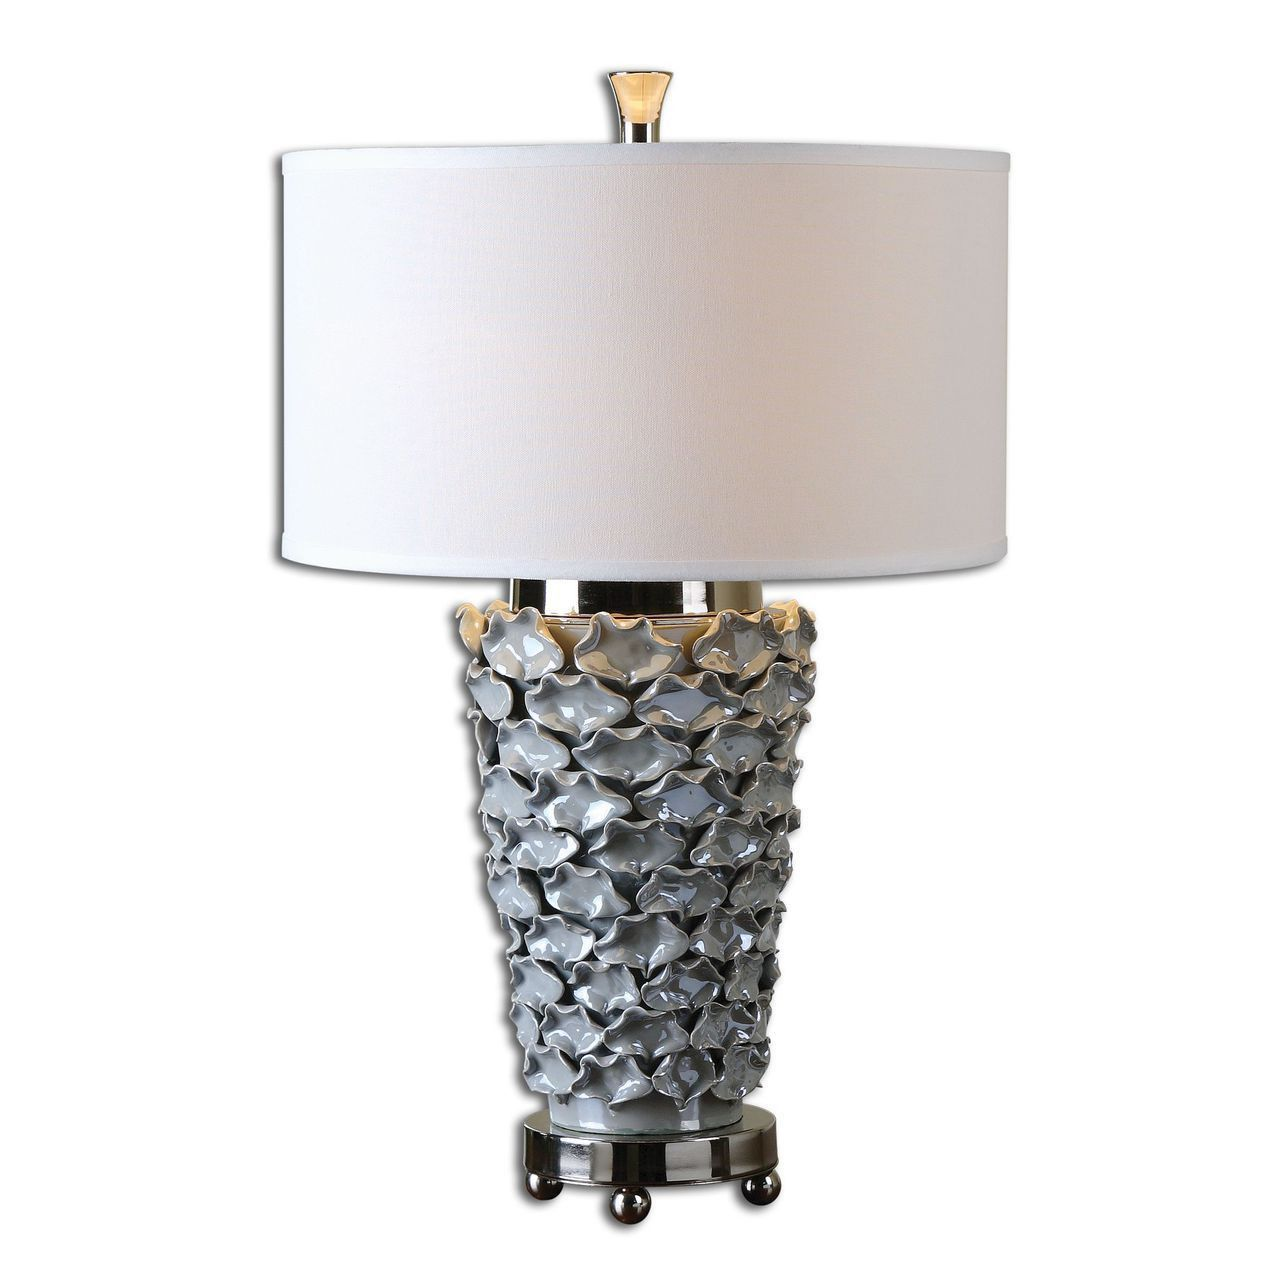 Gray Table Lamps Unique Uttermost Petalo Pearl Gray Table Lamp  Products  Pinterest  Grey Design Inspiration